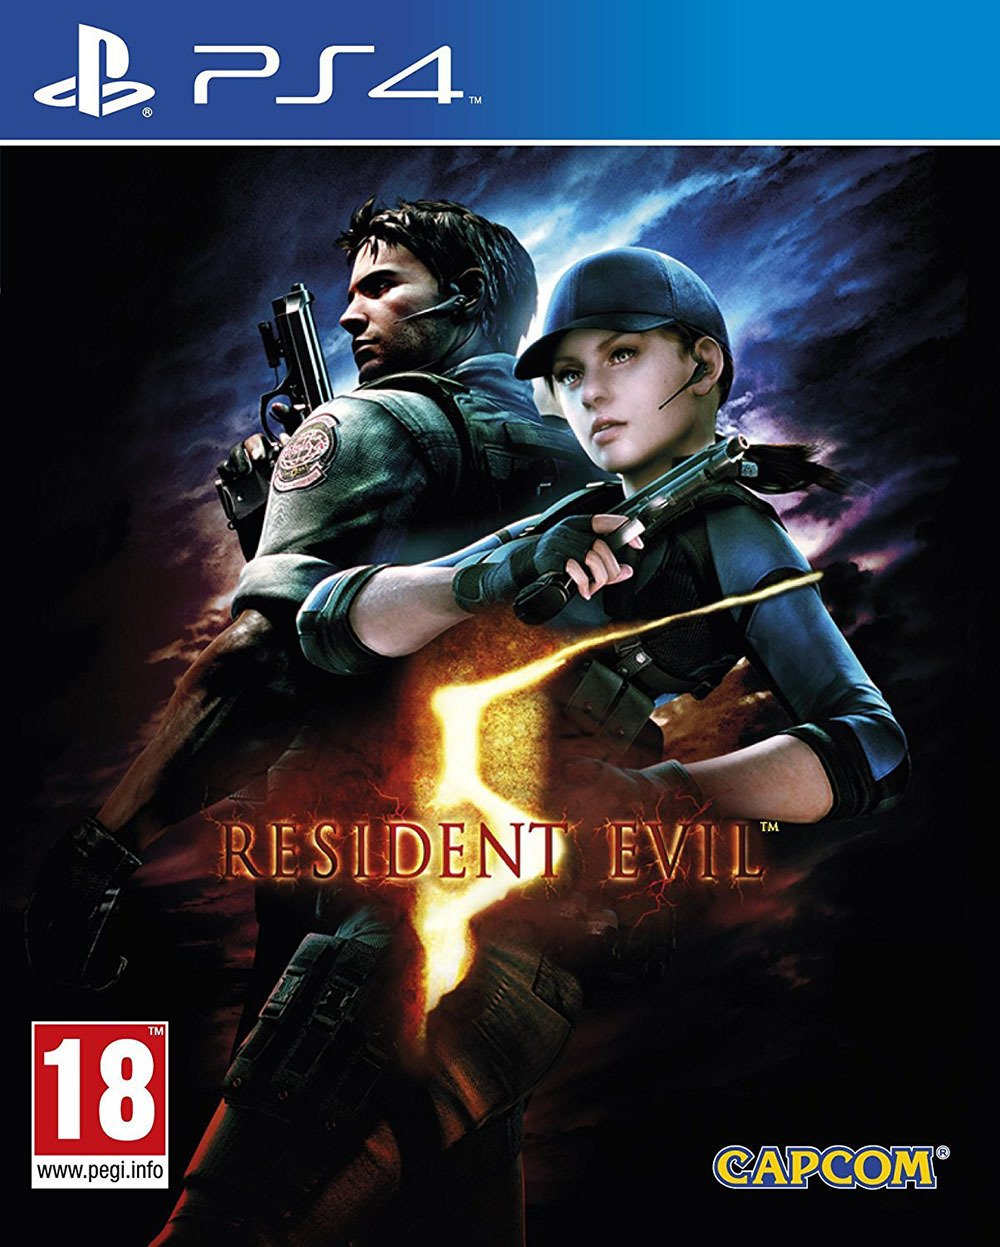 Image of Resident Evil 5 PS4 Game.